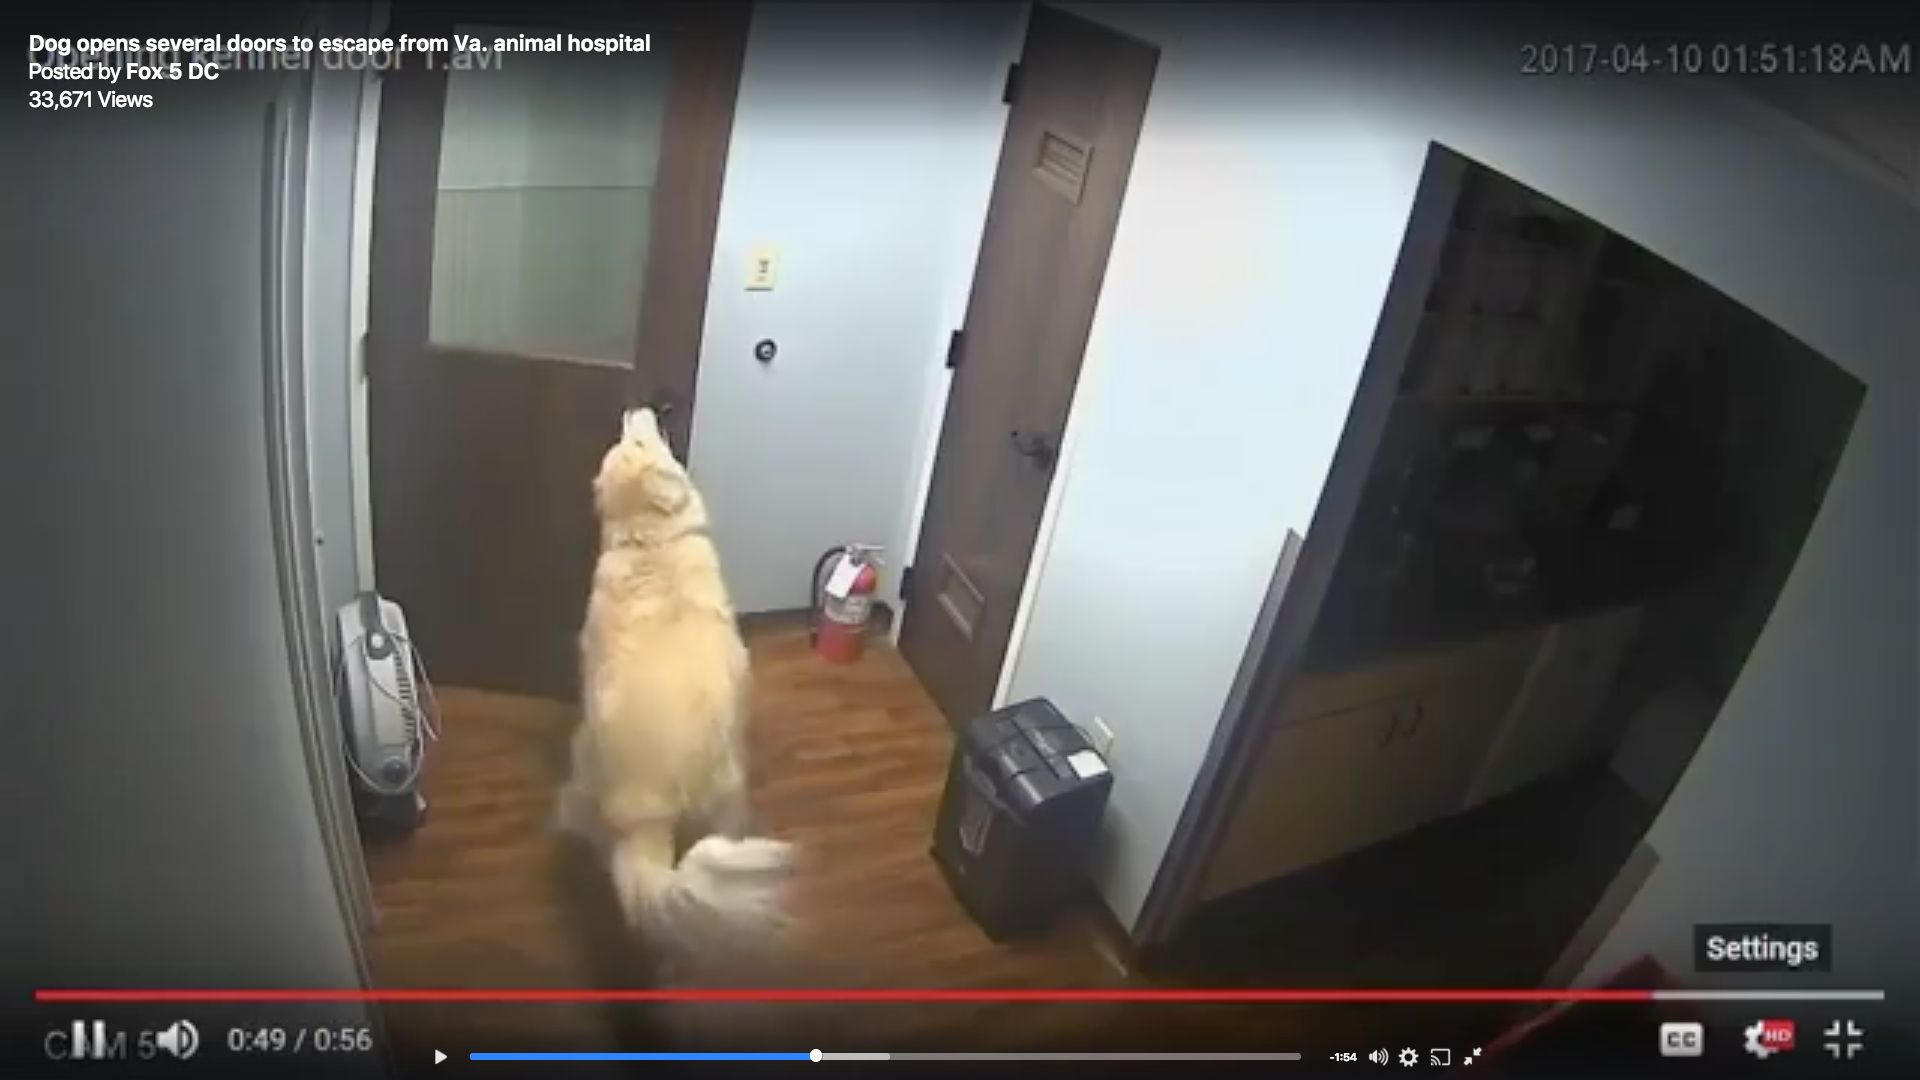 General the dog was filmed breaking out of the animal hospital with ease.